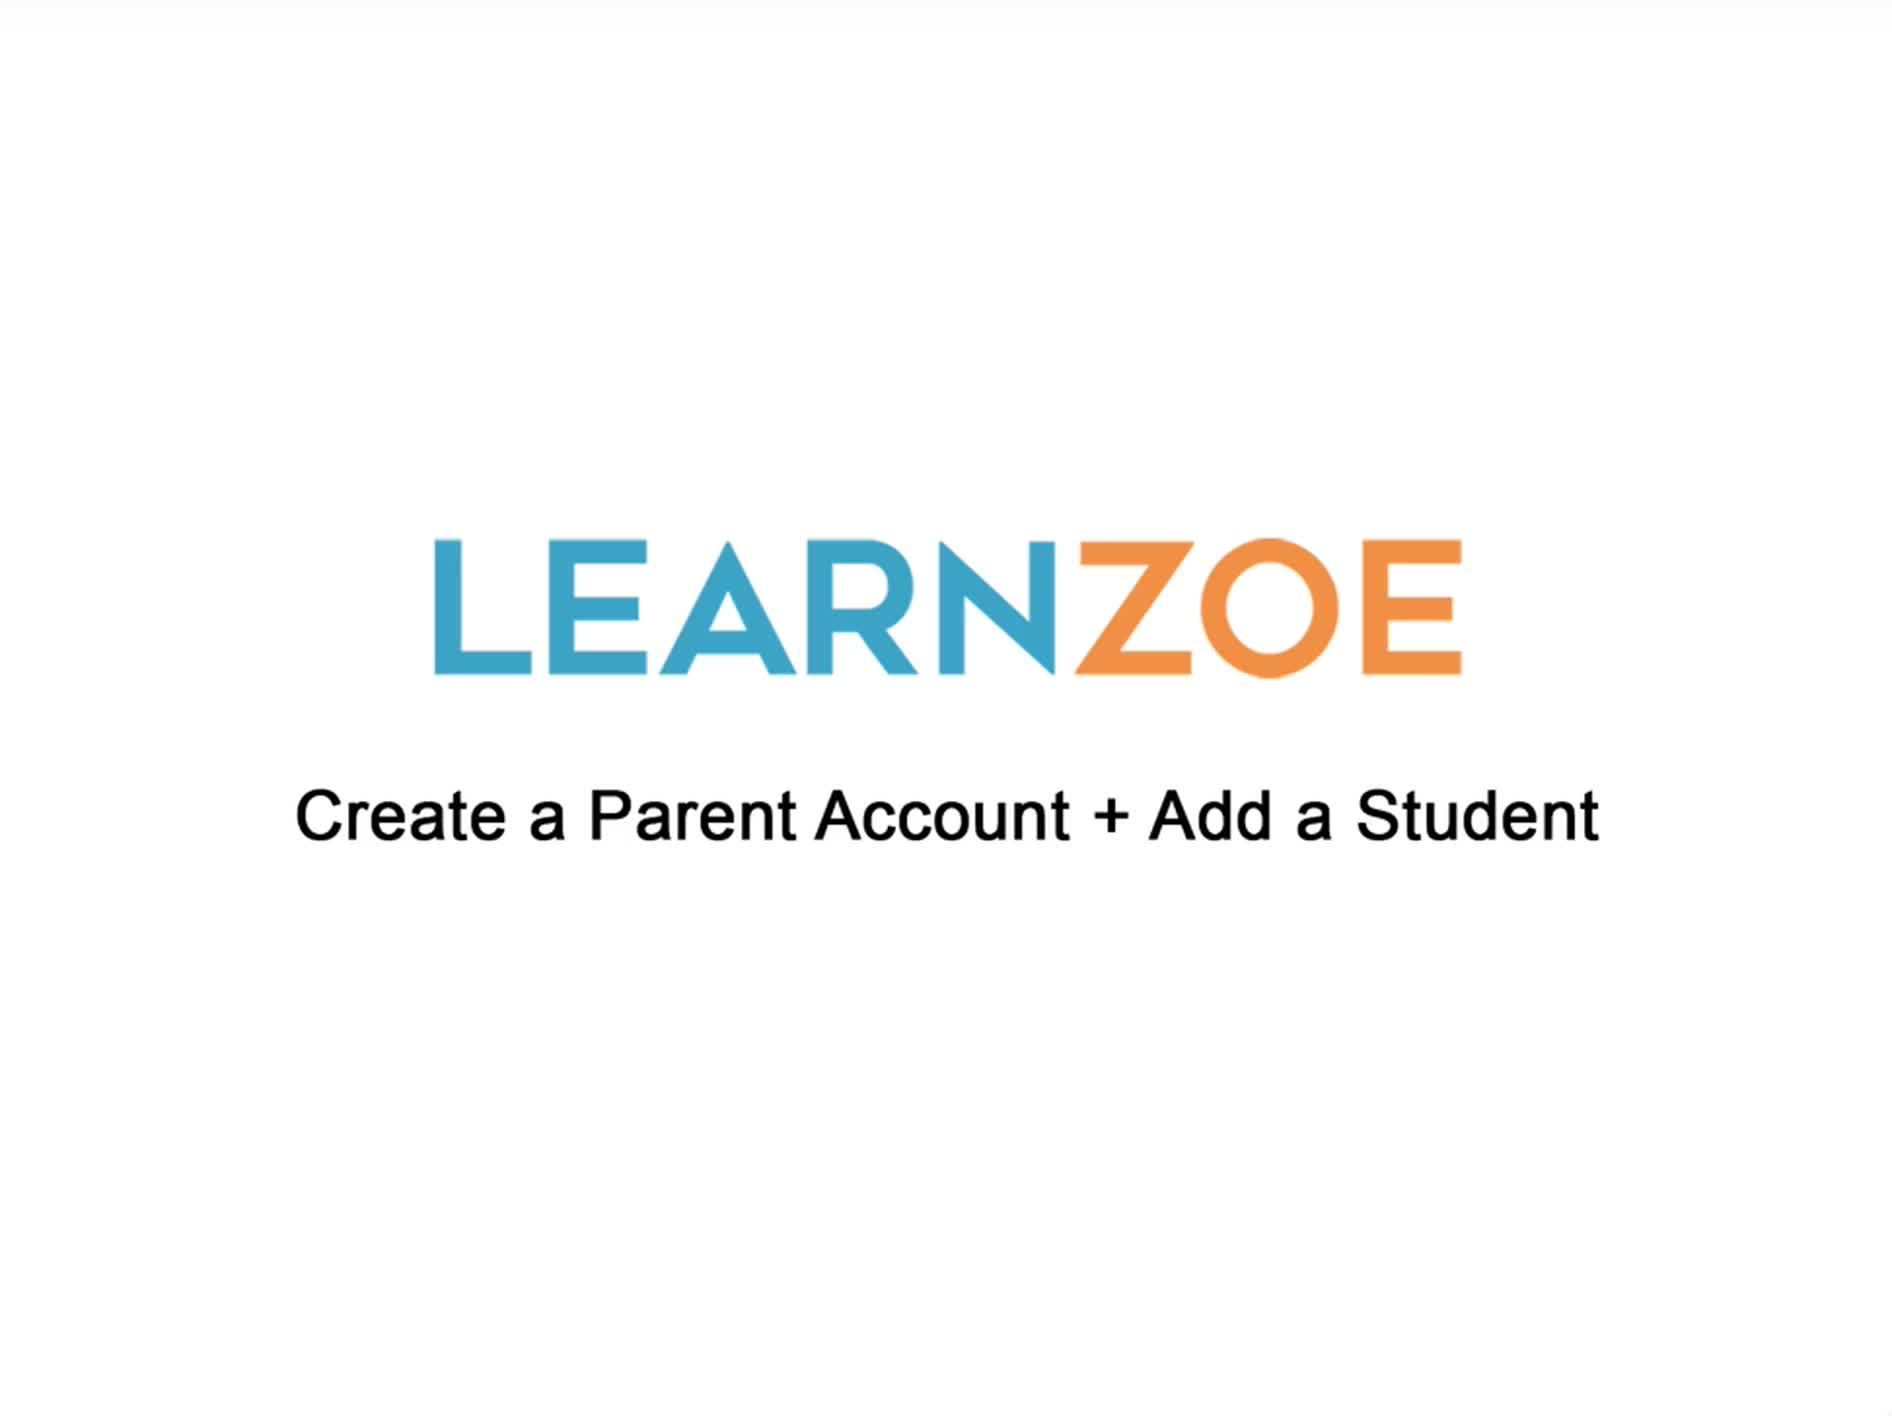 Create a Parent Account<br> and Add a Student Video Thumbnail